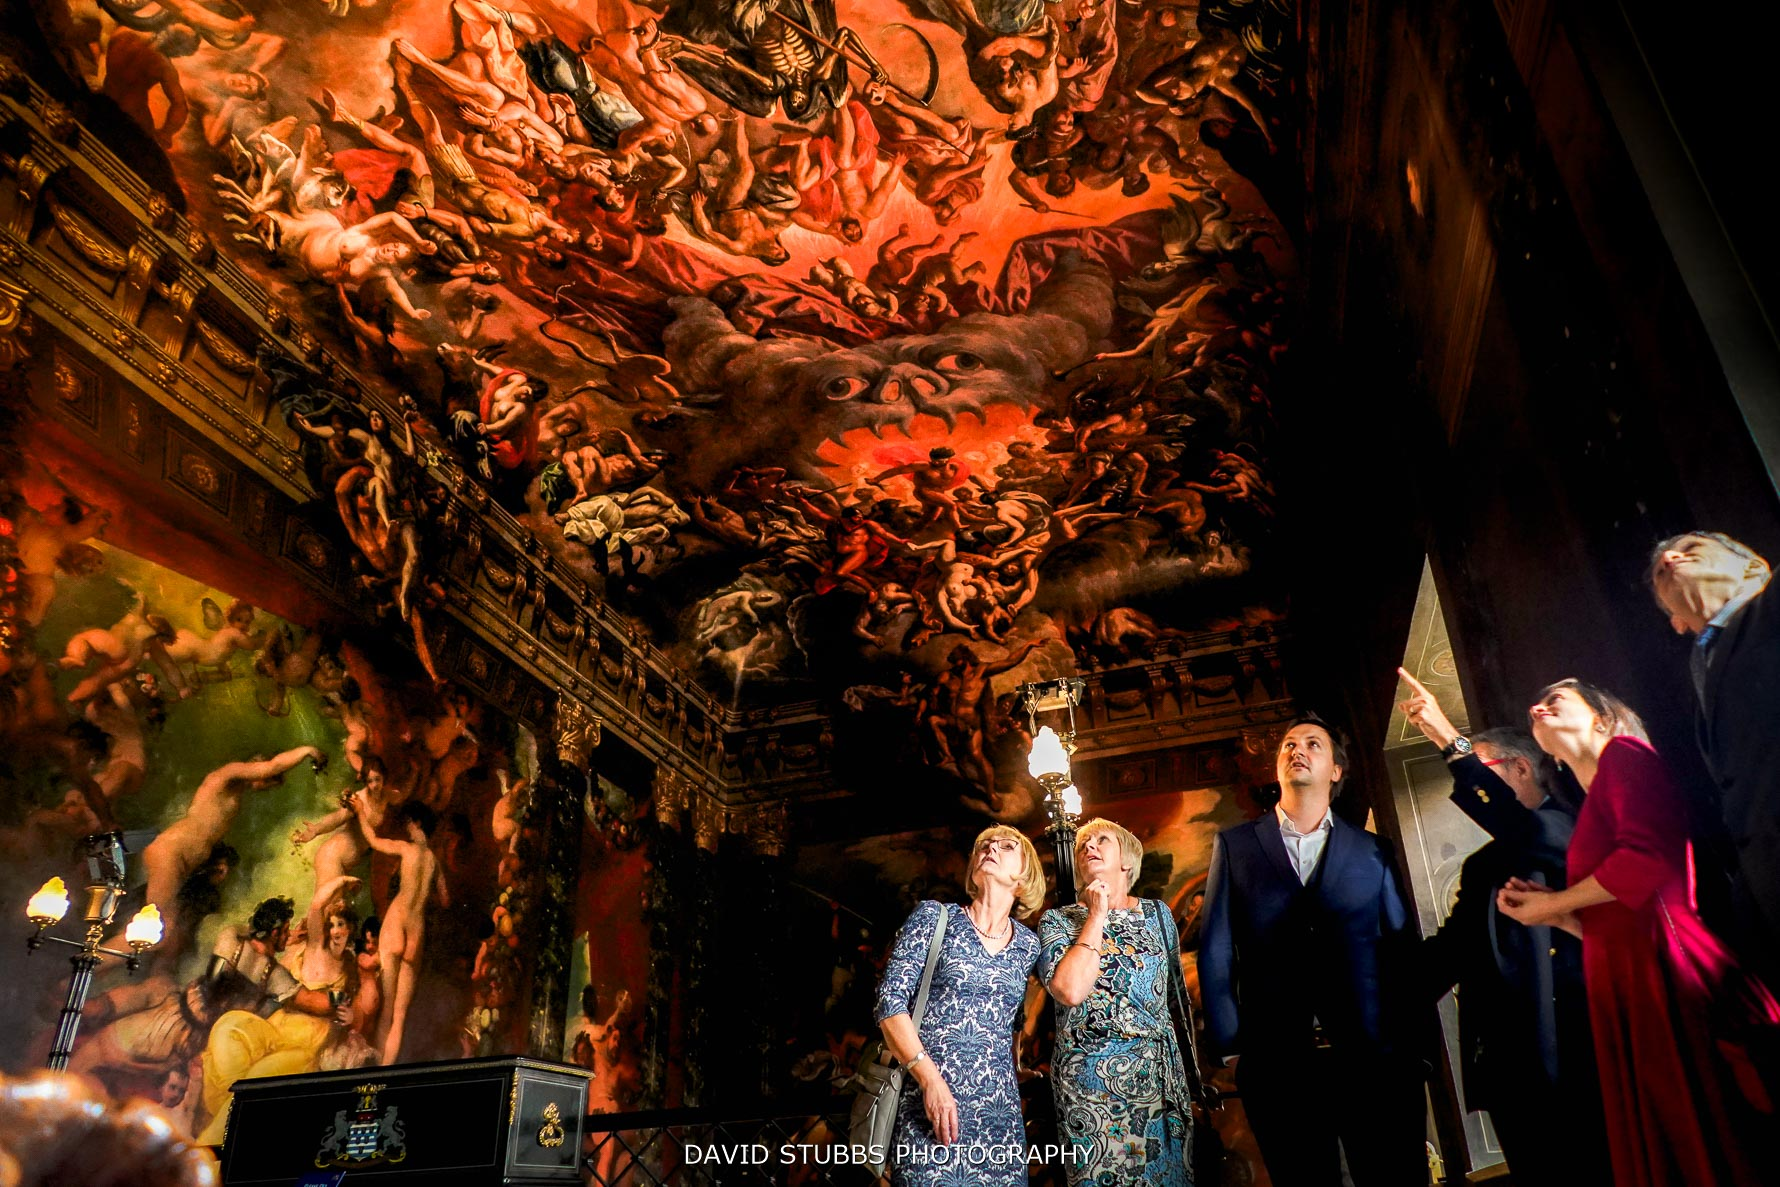 hell's ceiling at Burghley house with wedding guests